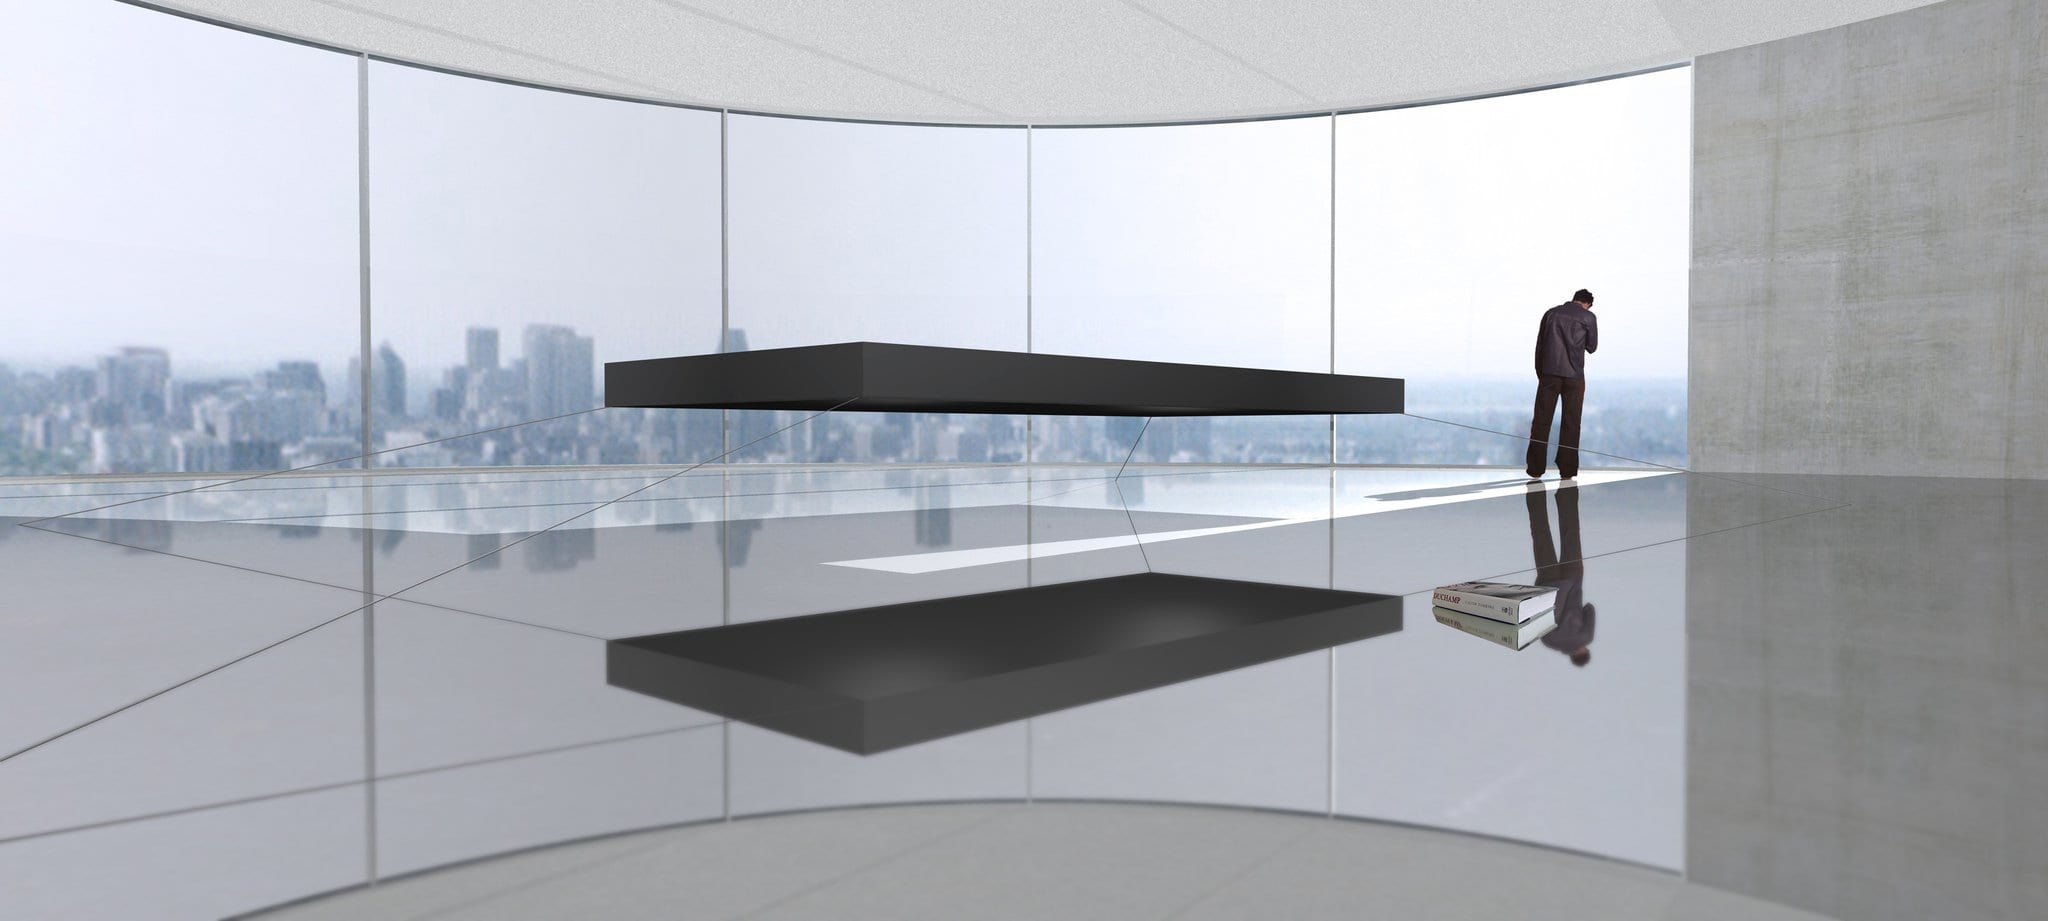 Most Expensive Furniture Brands   Ruijssenaars Magnetic Floating Bed